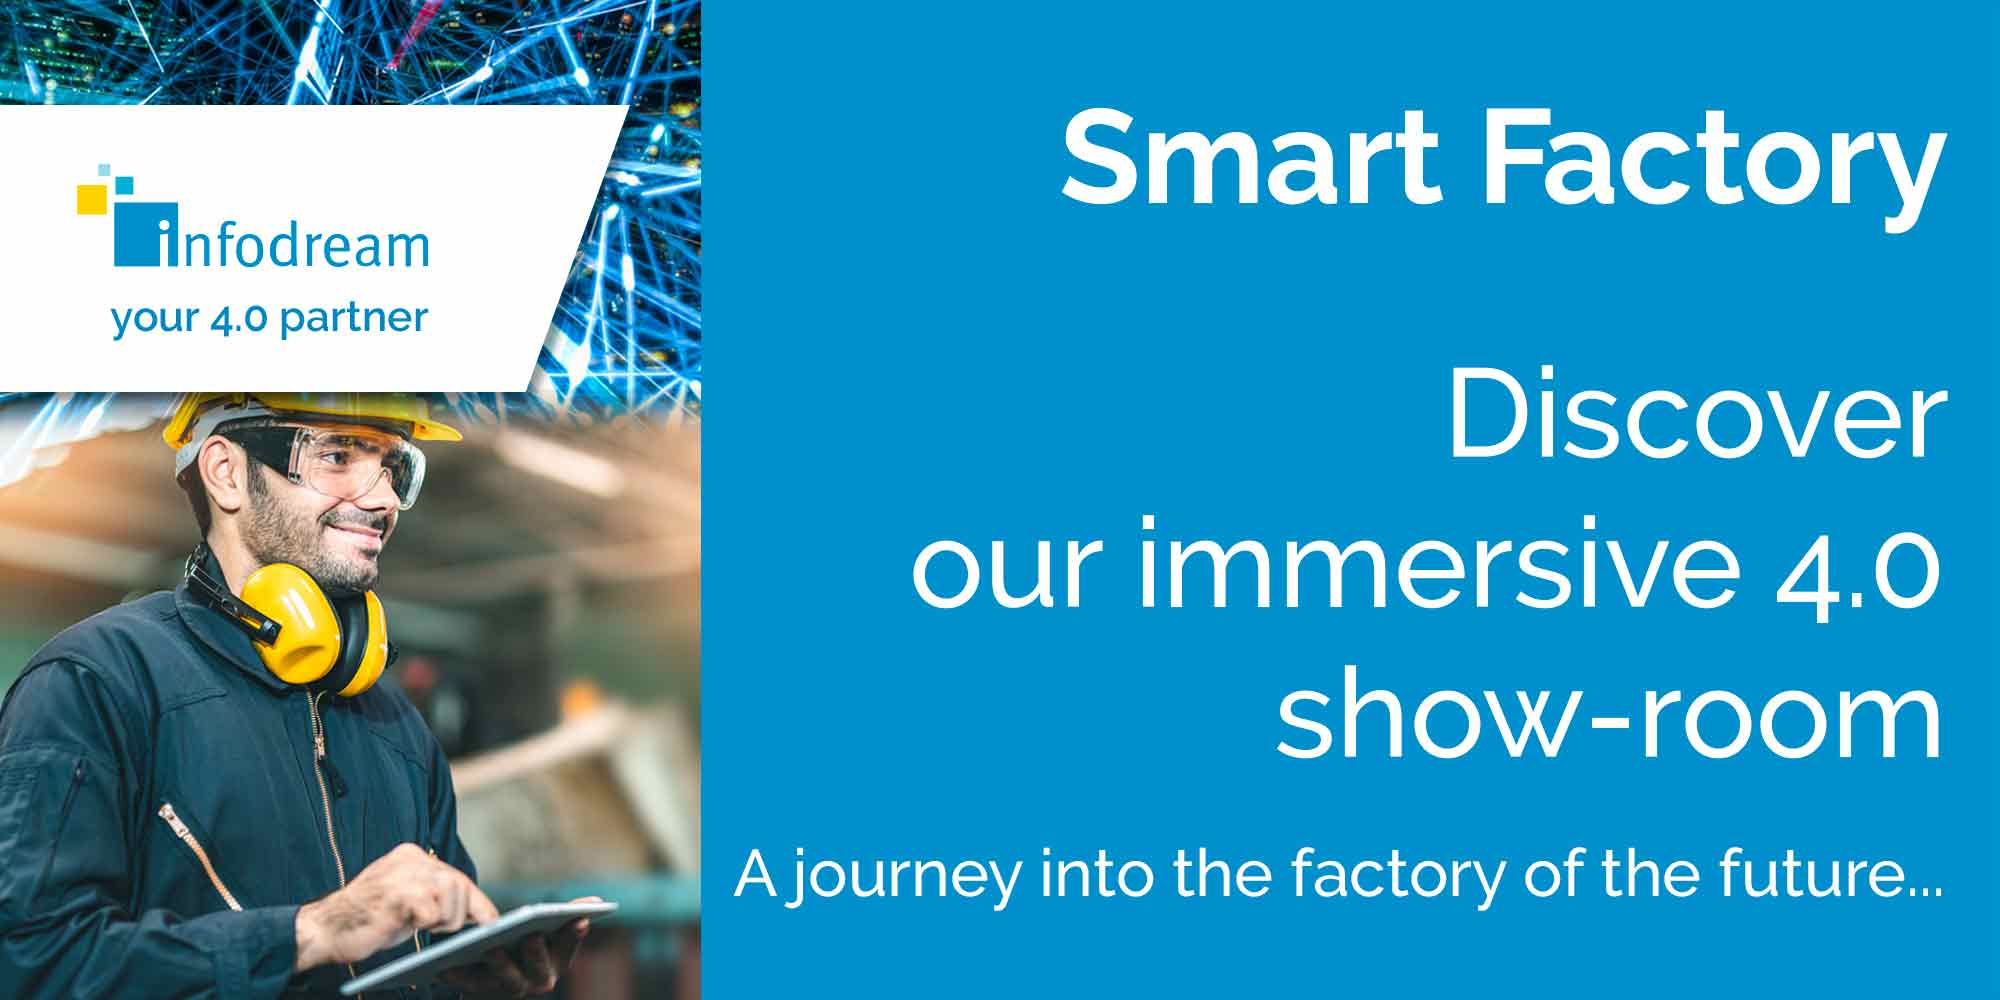 The Infodream Smart Factory Is An Immersive Show Room About Industry 4.0